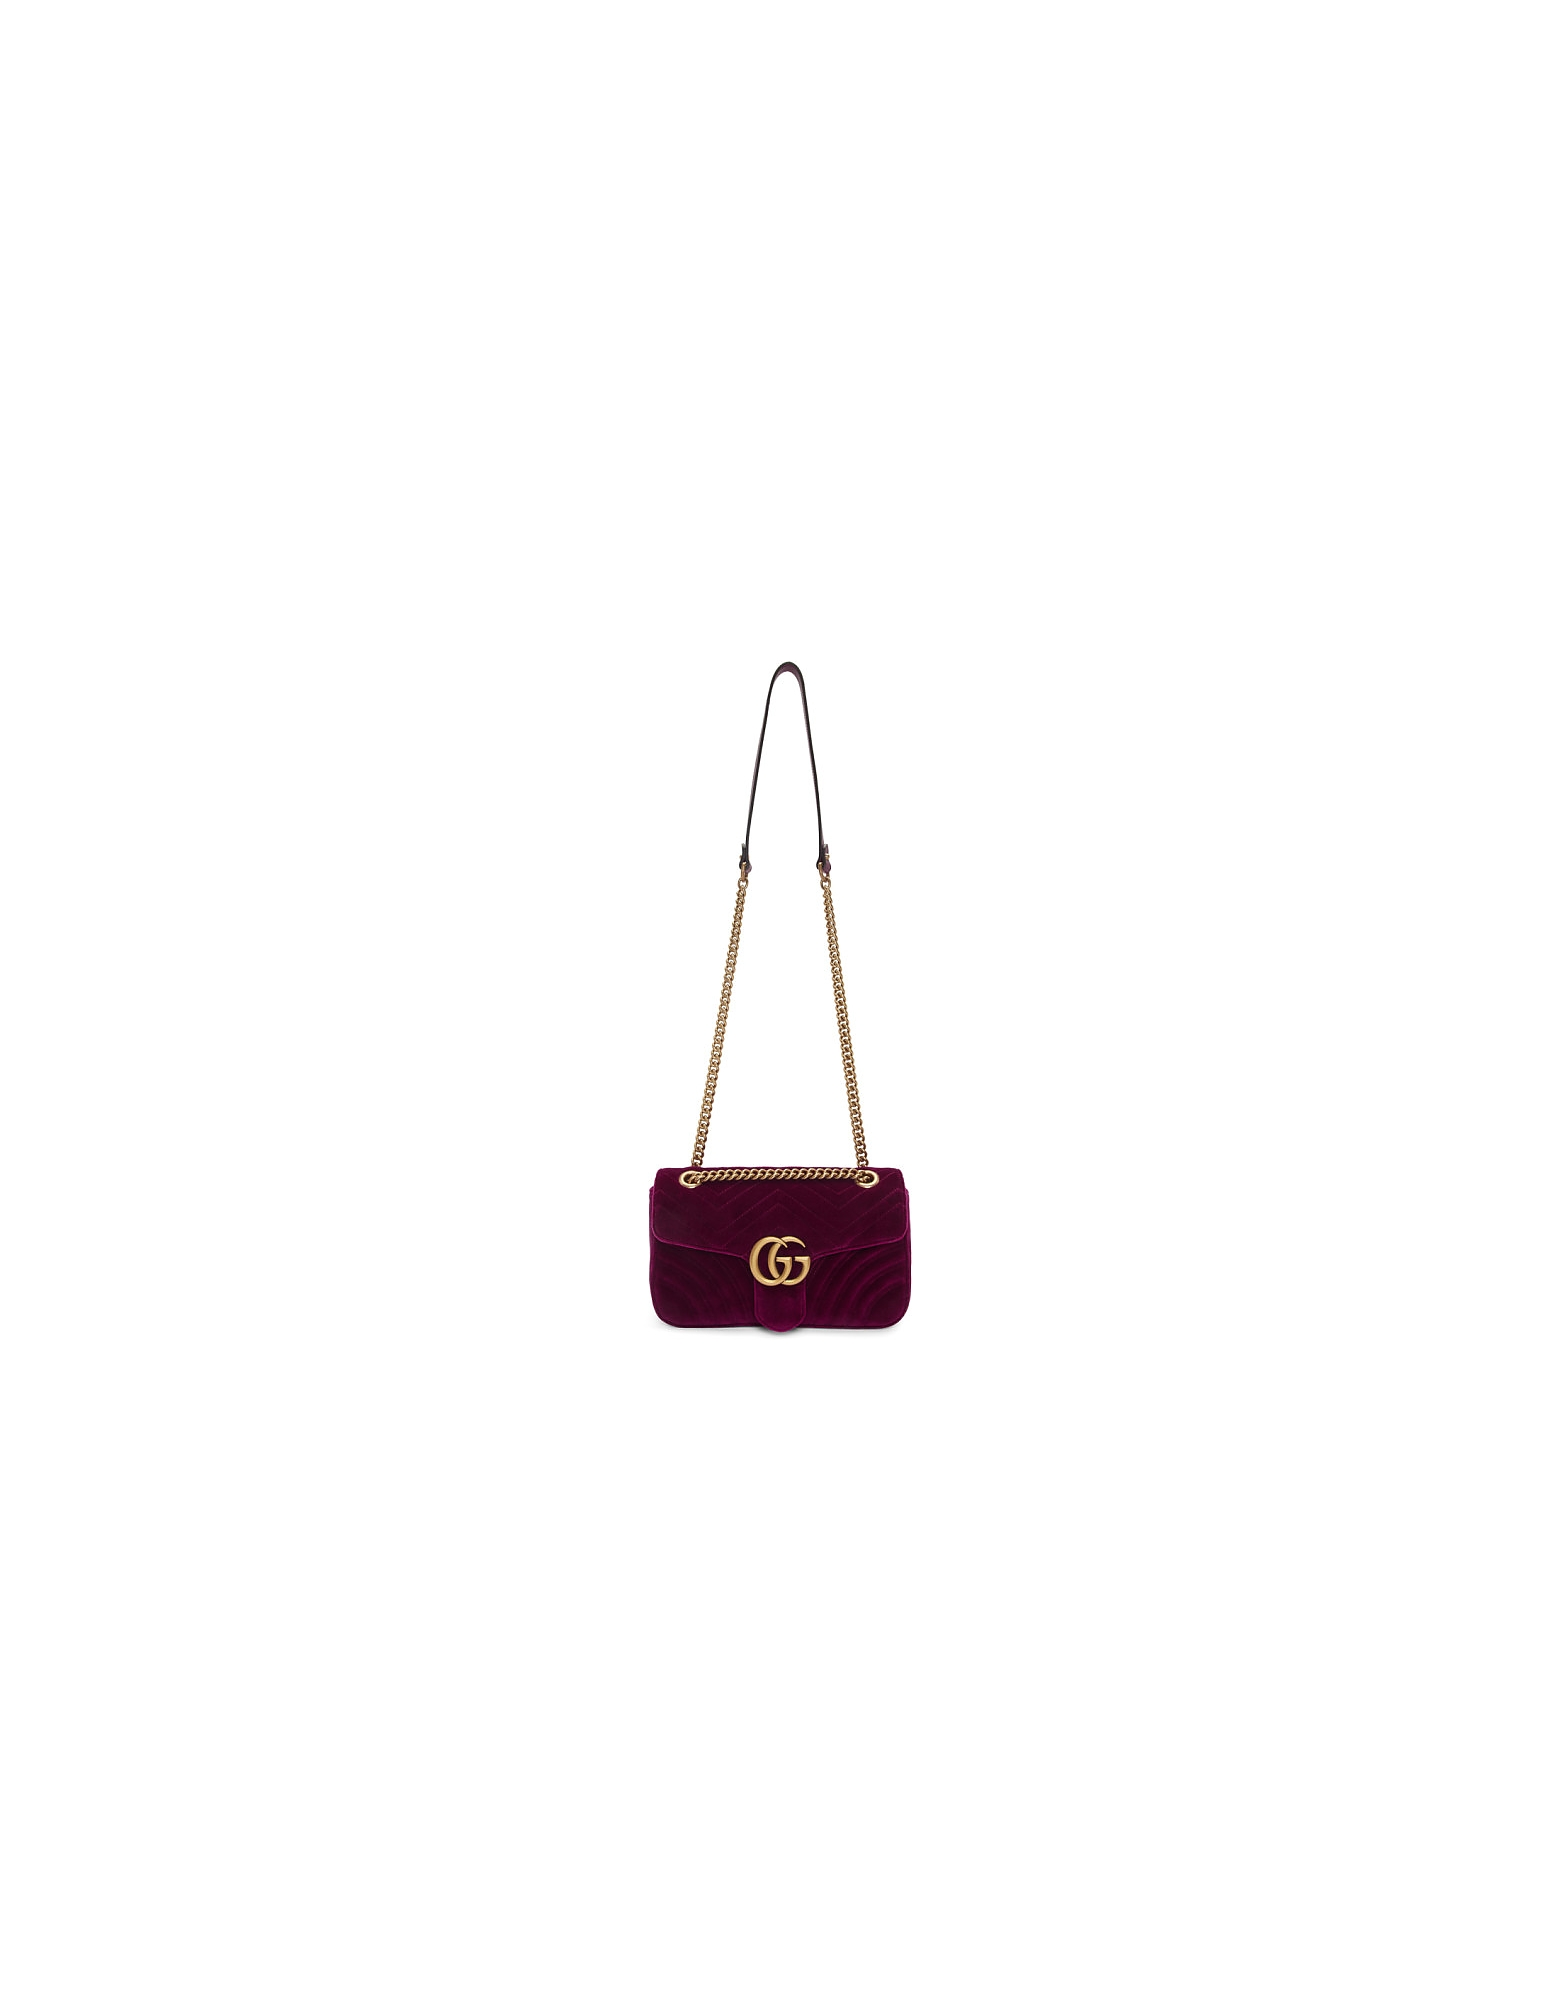 Gucci Designer Handbags, Purple Small Velvet GG Marmont 2.0 Bag